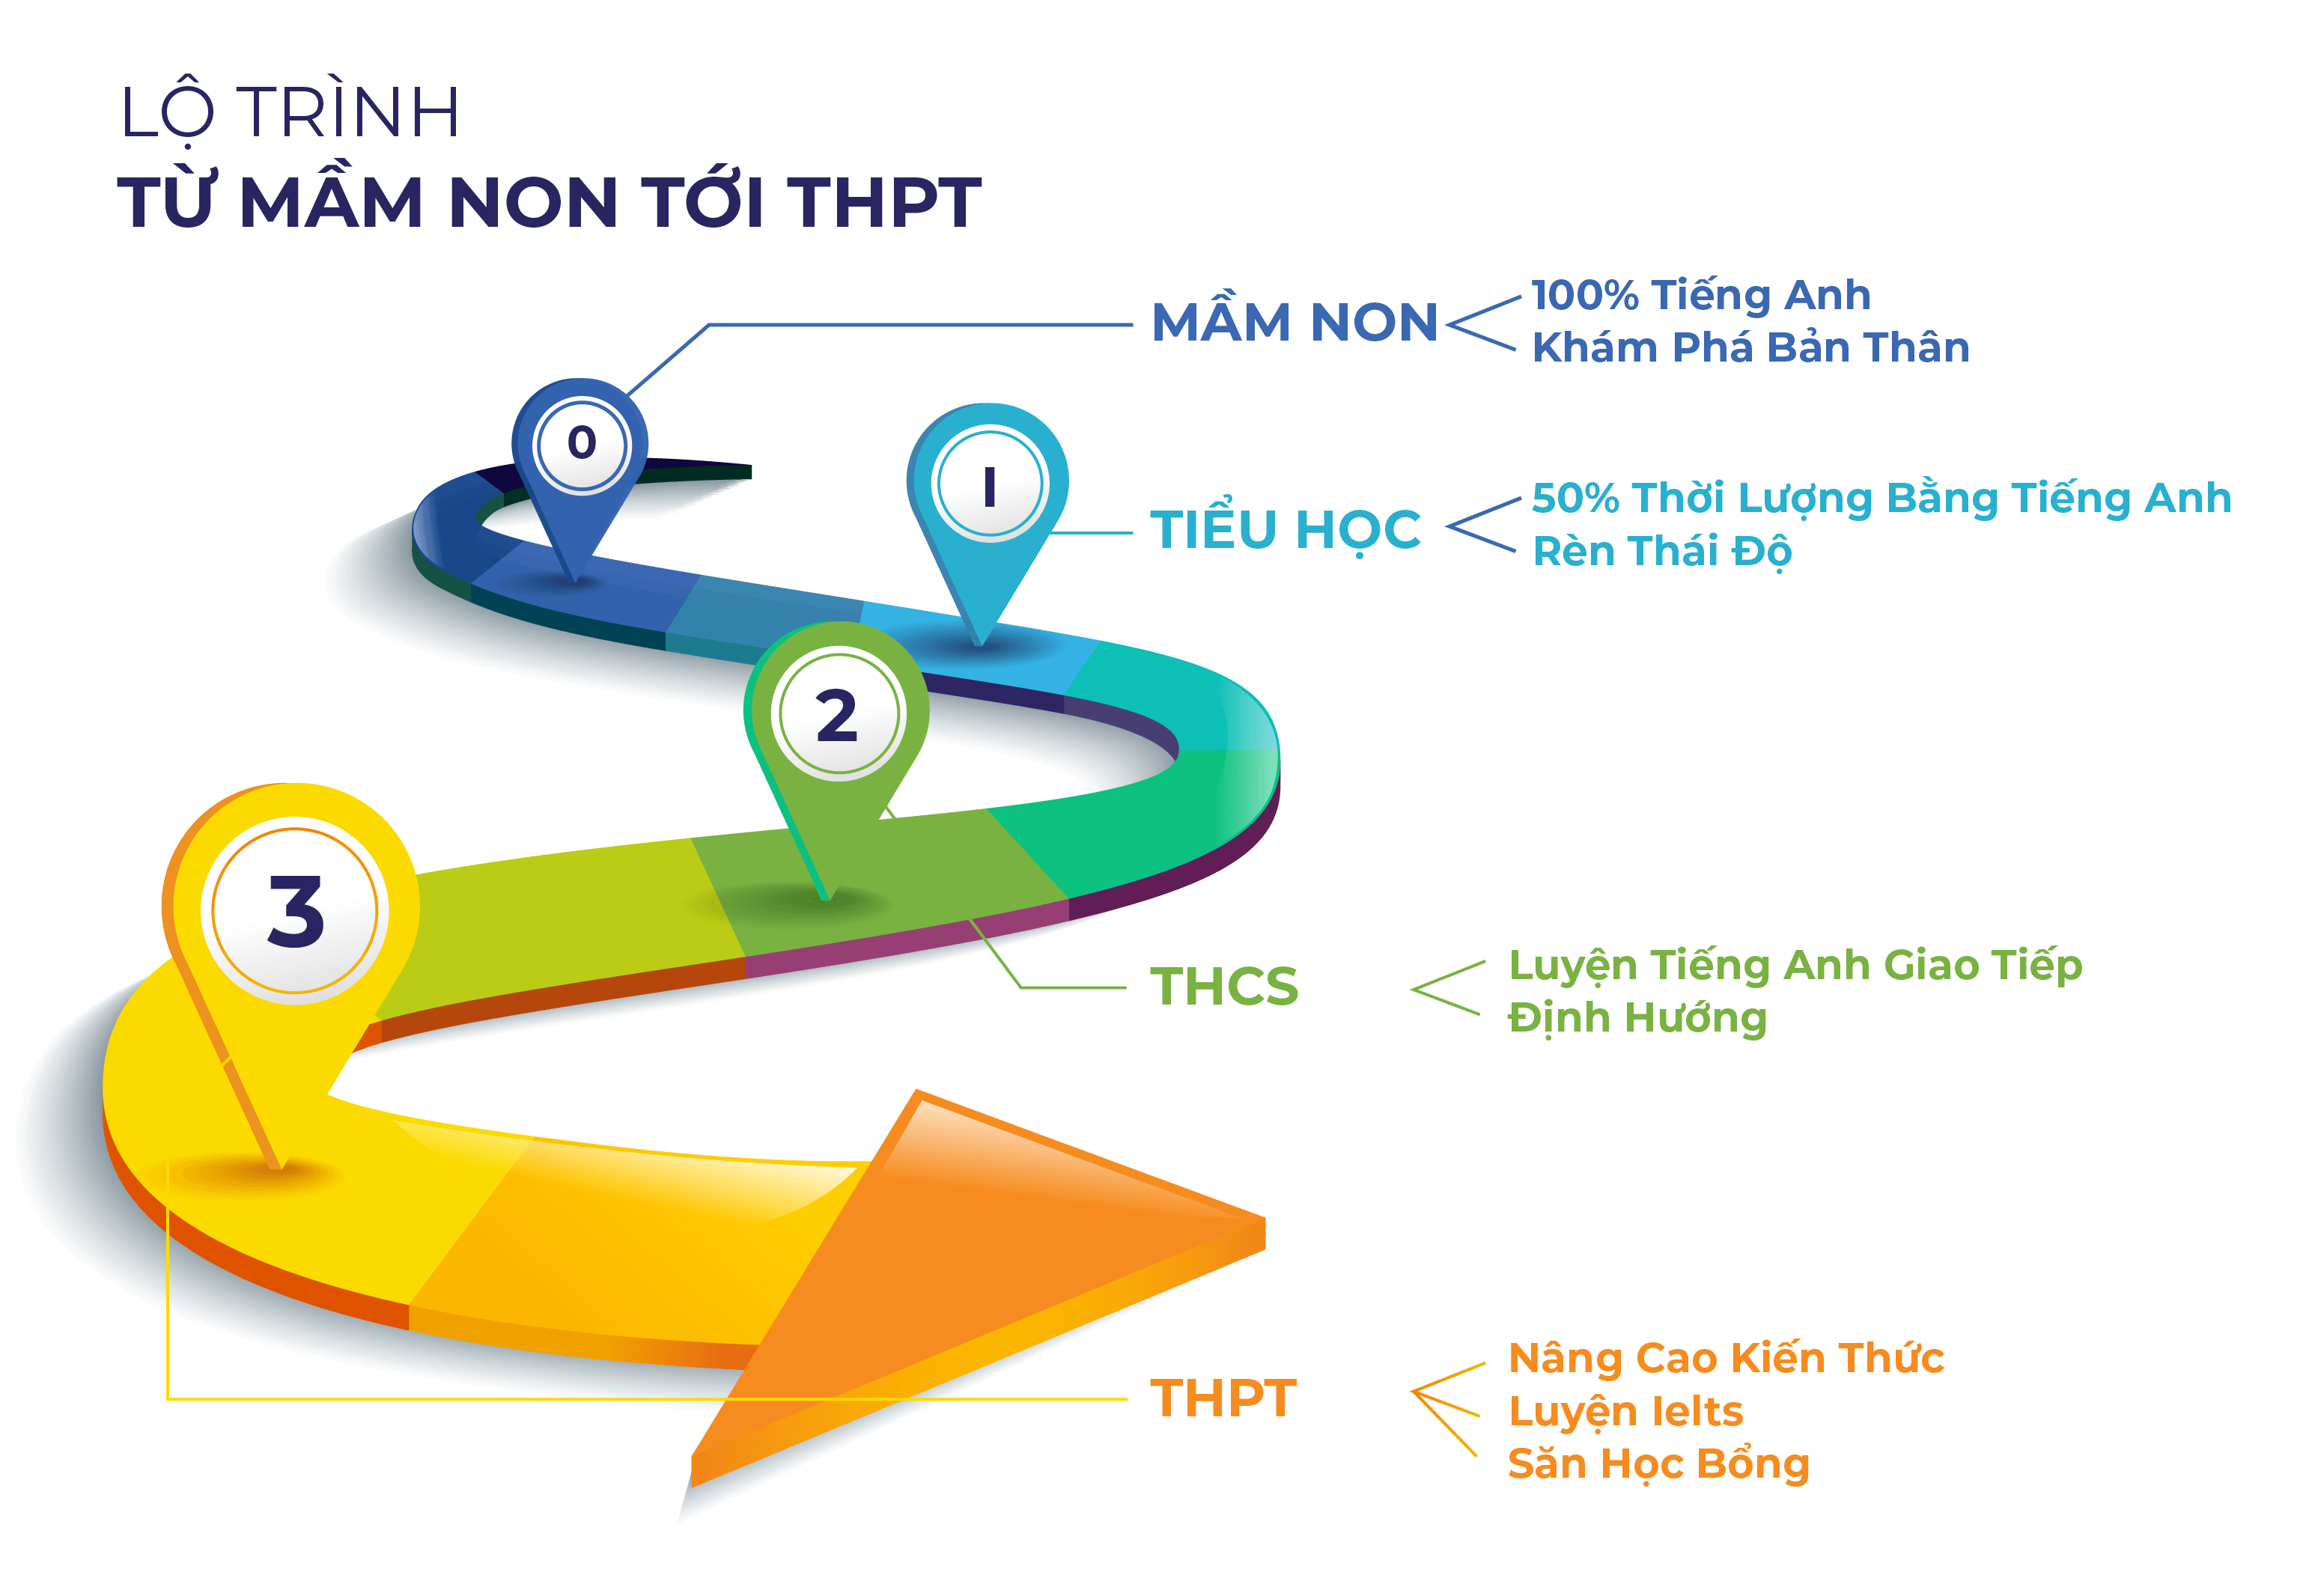 lo-trinh-hoc-tap-K12-truong-viet-anh